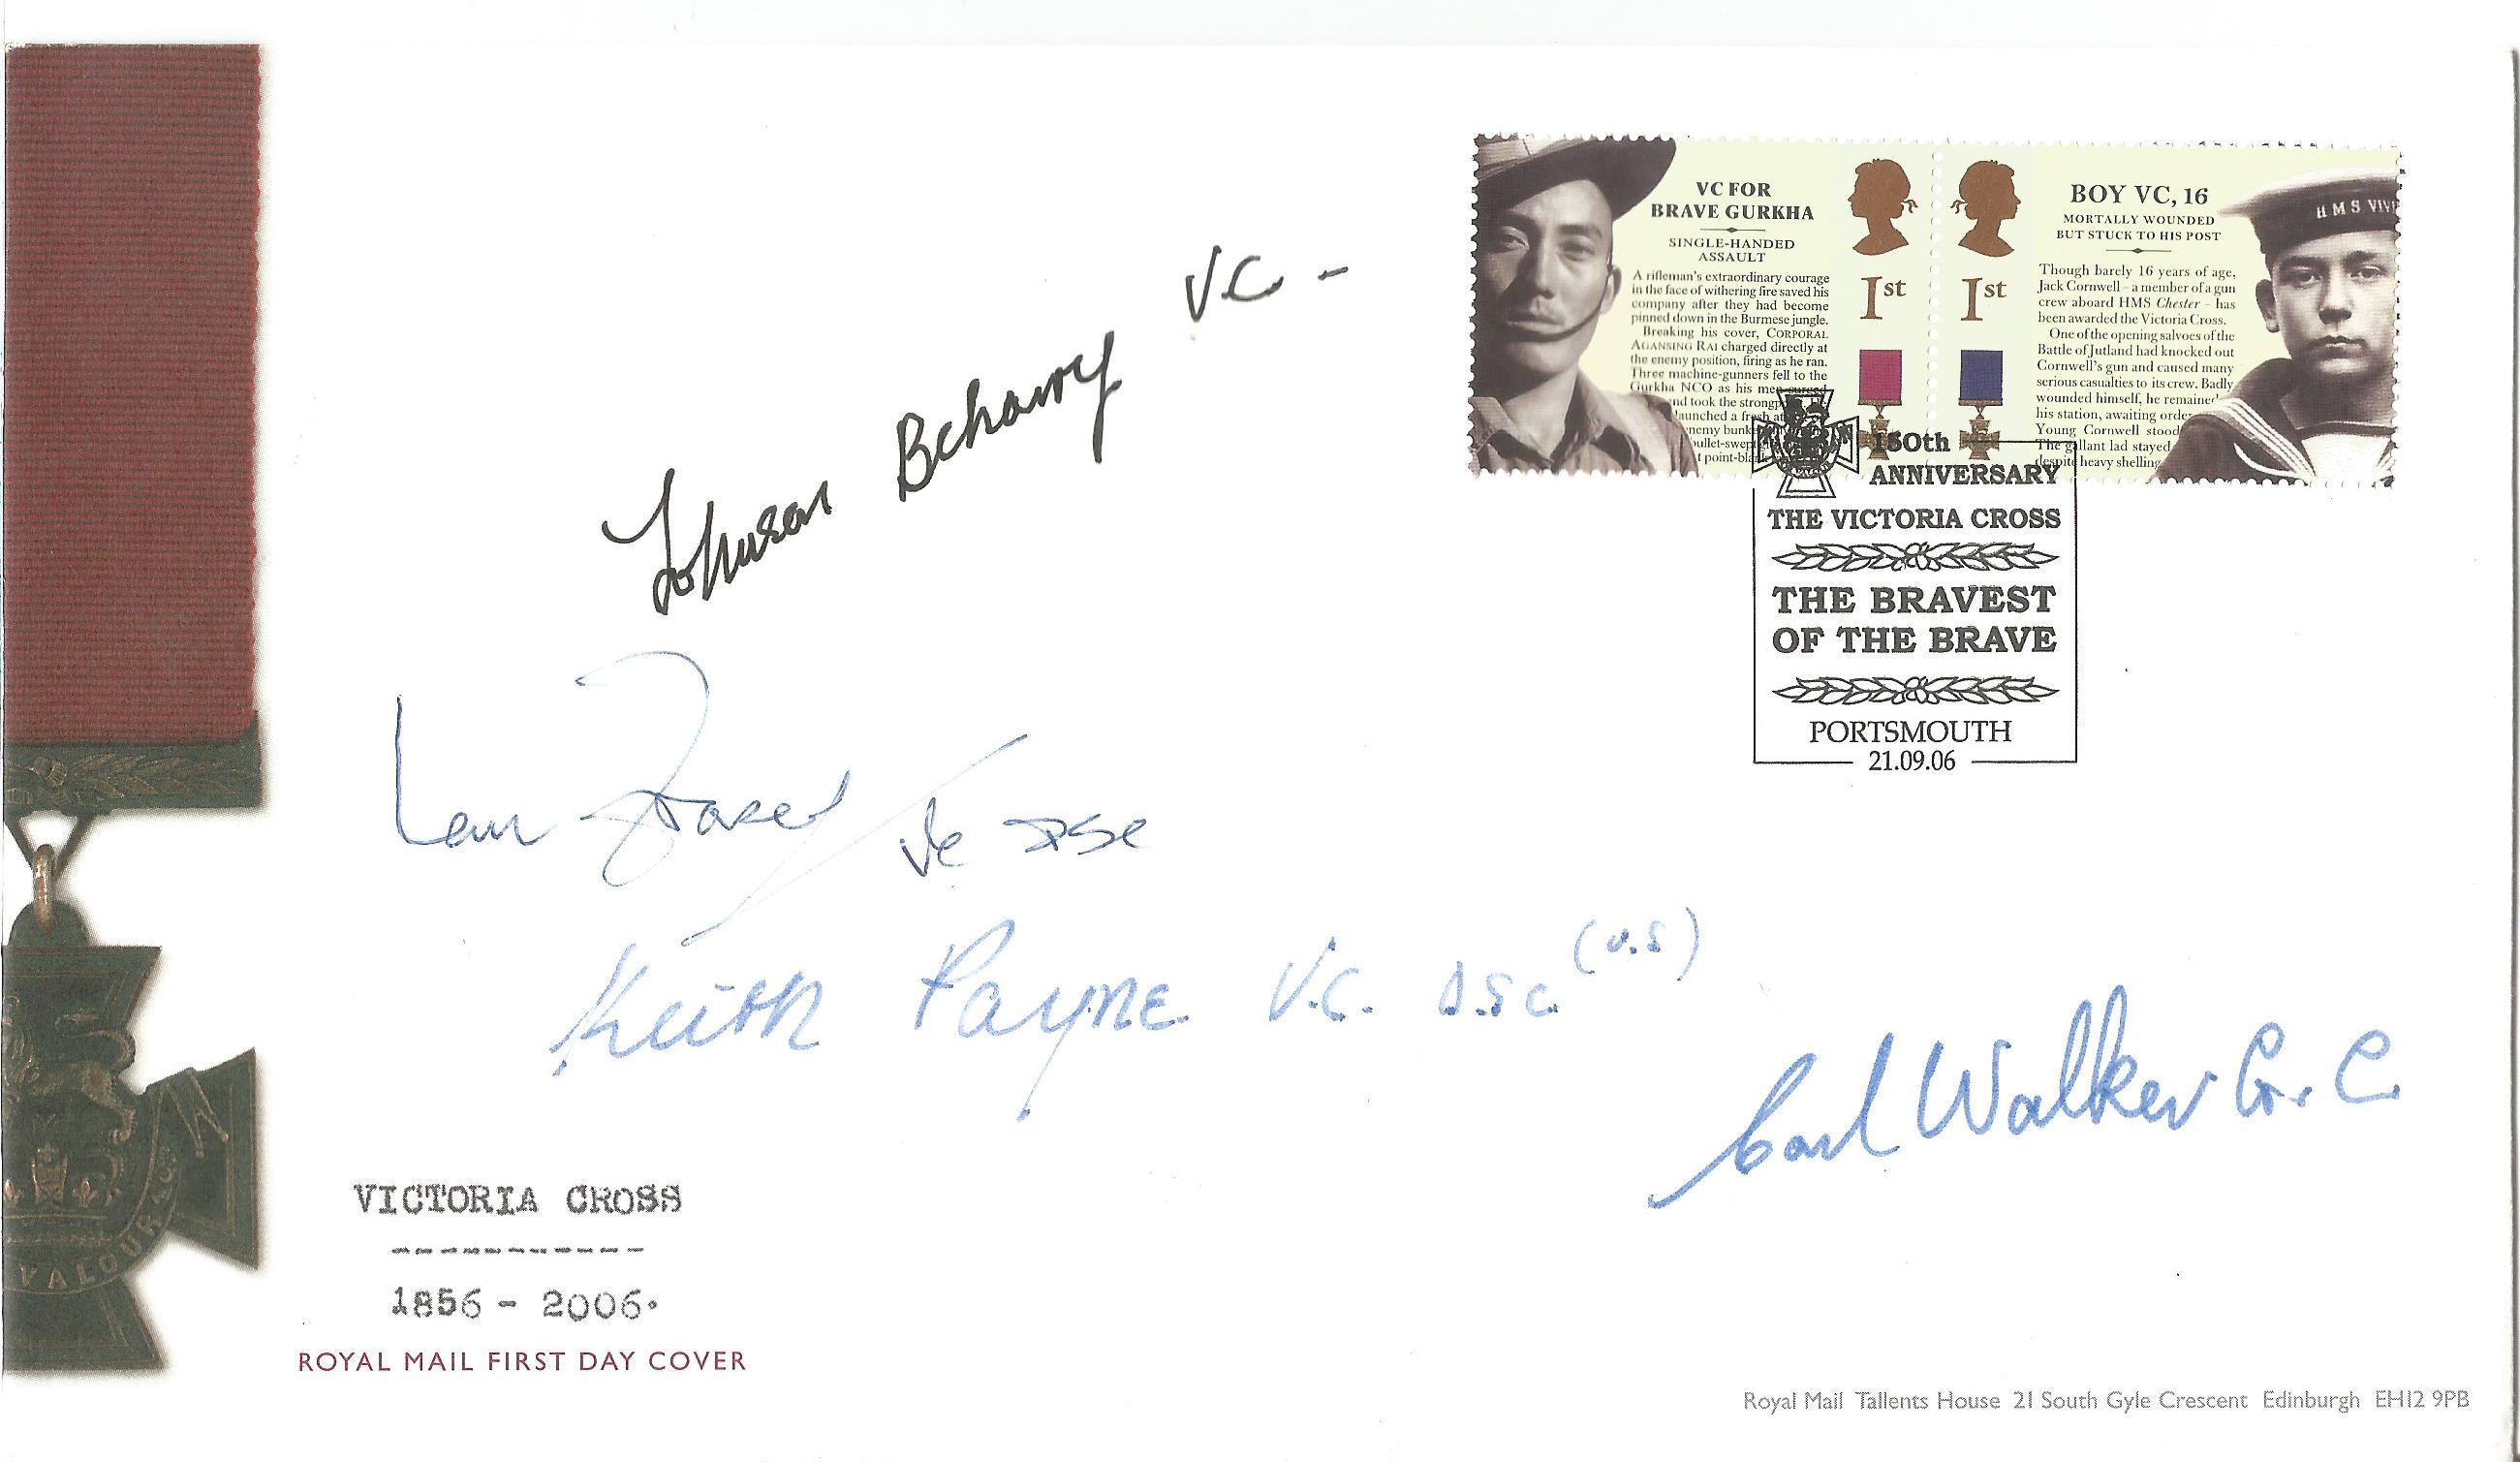 Victoria Cross winners multiple signed 2006 VC FDC. Signed by Johnson Beharry VC, Ian Fraser VC,